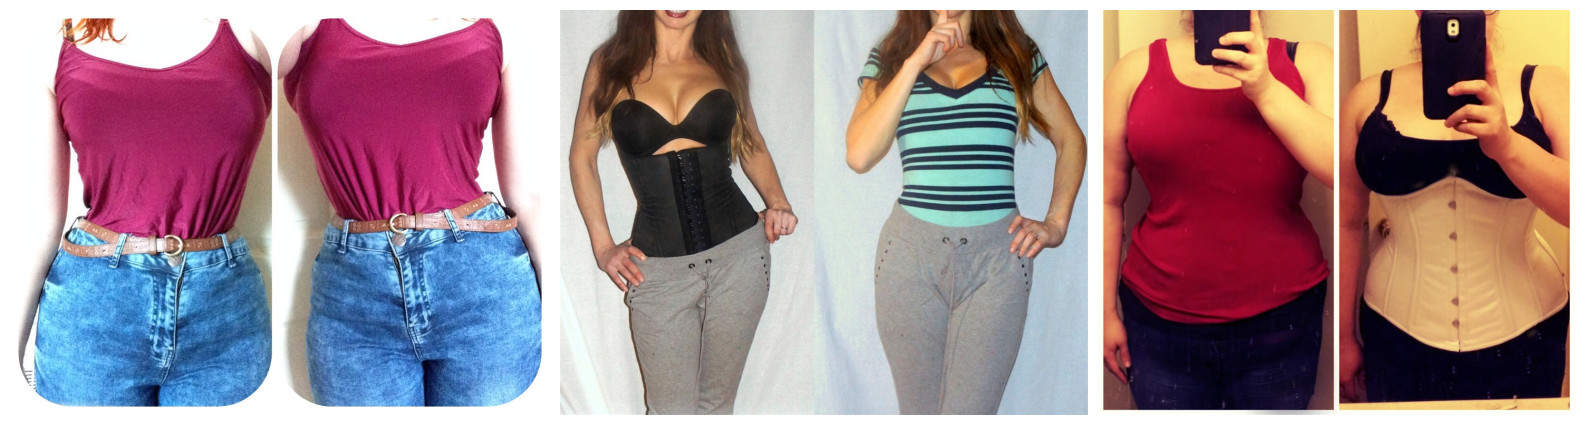 Waist trainer you can wear under clothes